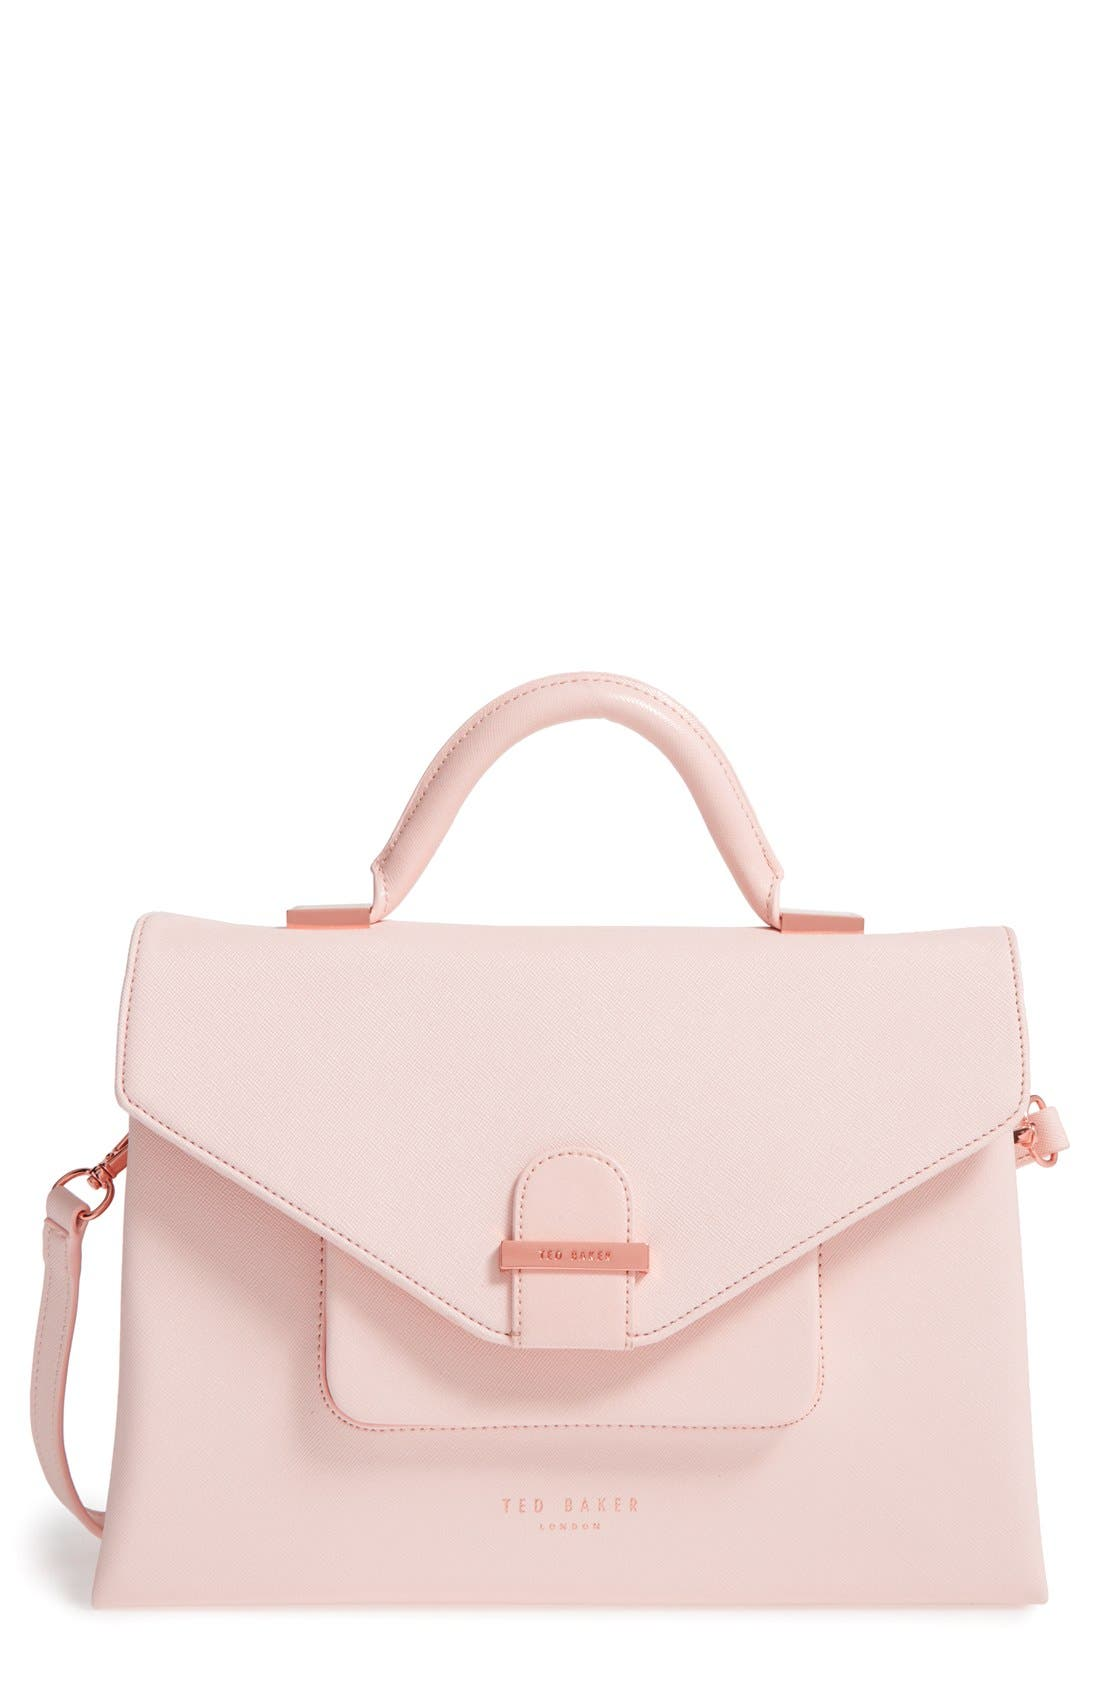 Alternate Image 1 Selected - Ted Baker London Faux Leather Satchel (Nordstrom Exclusive)